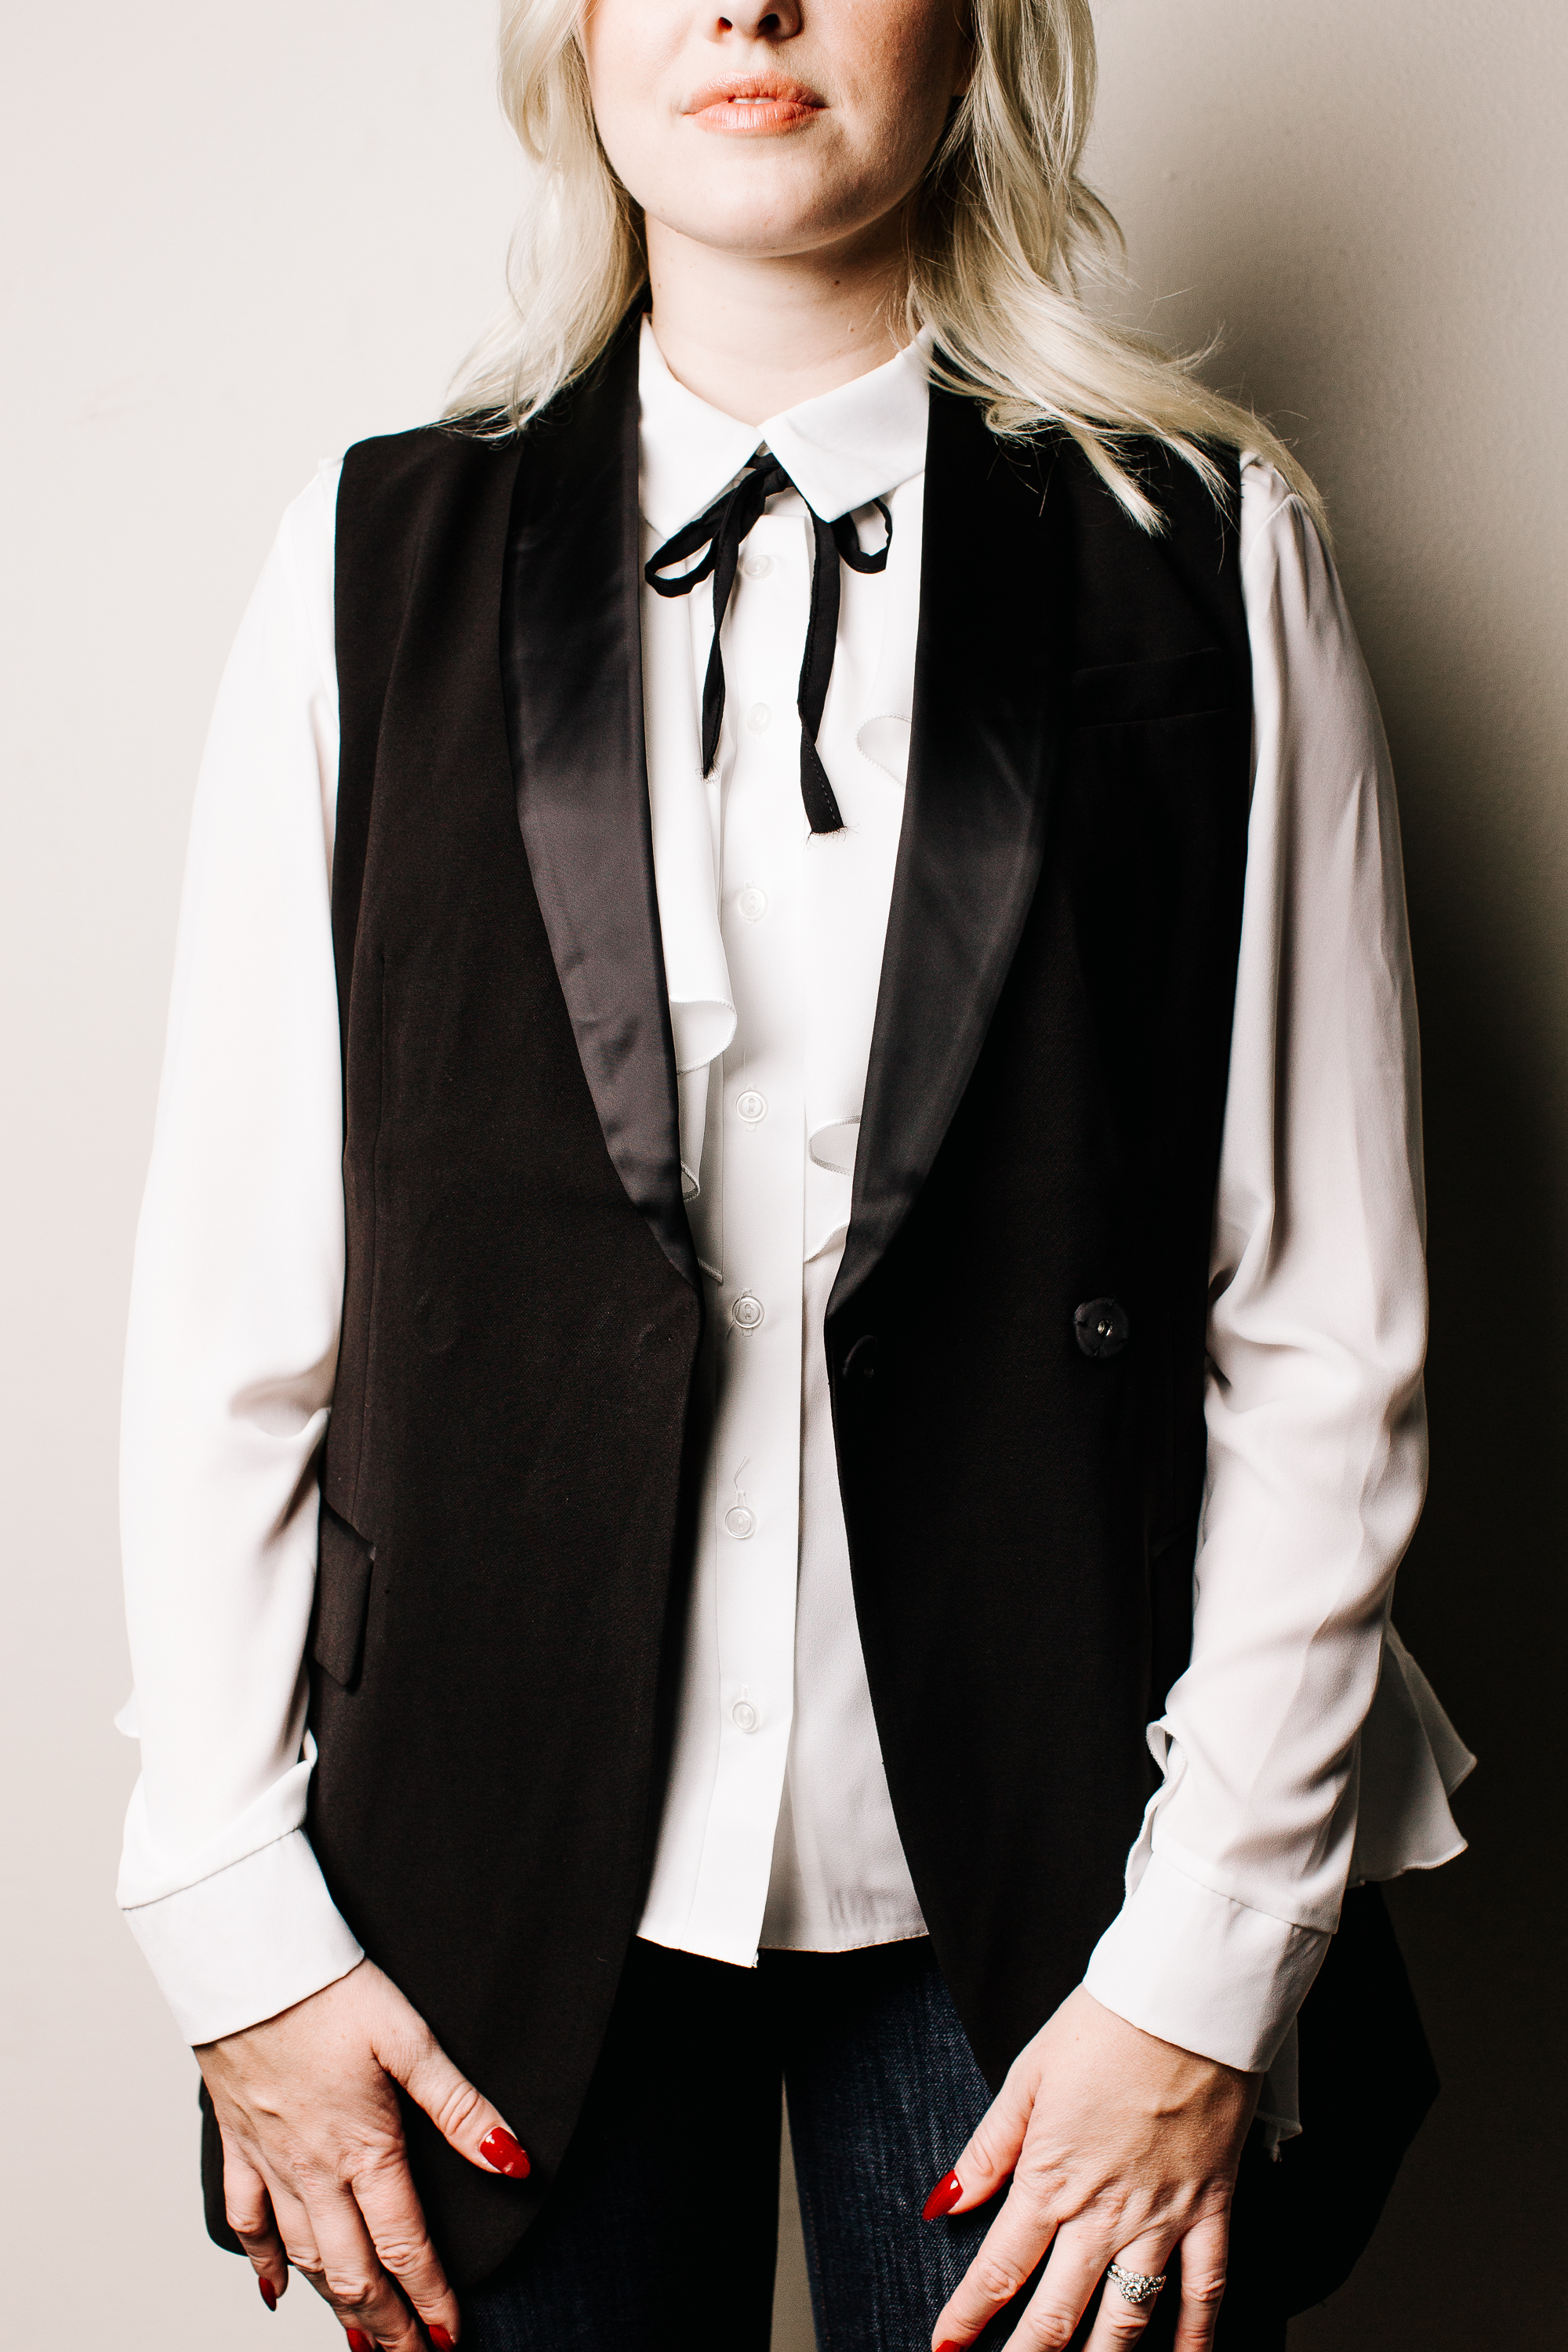 trish-taylor-tuxedo-vest-with-white-blouse